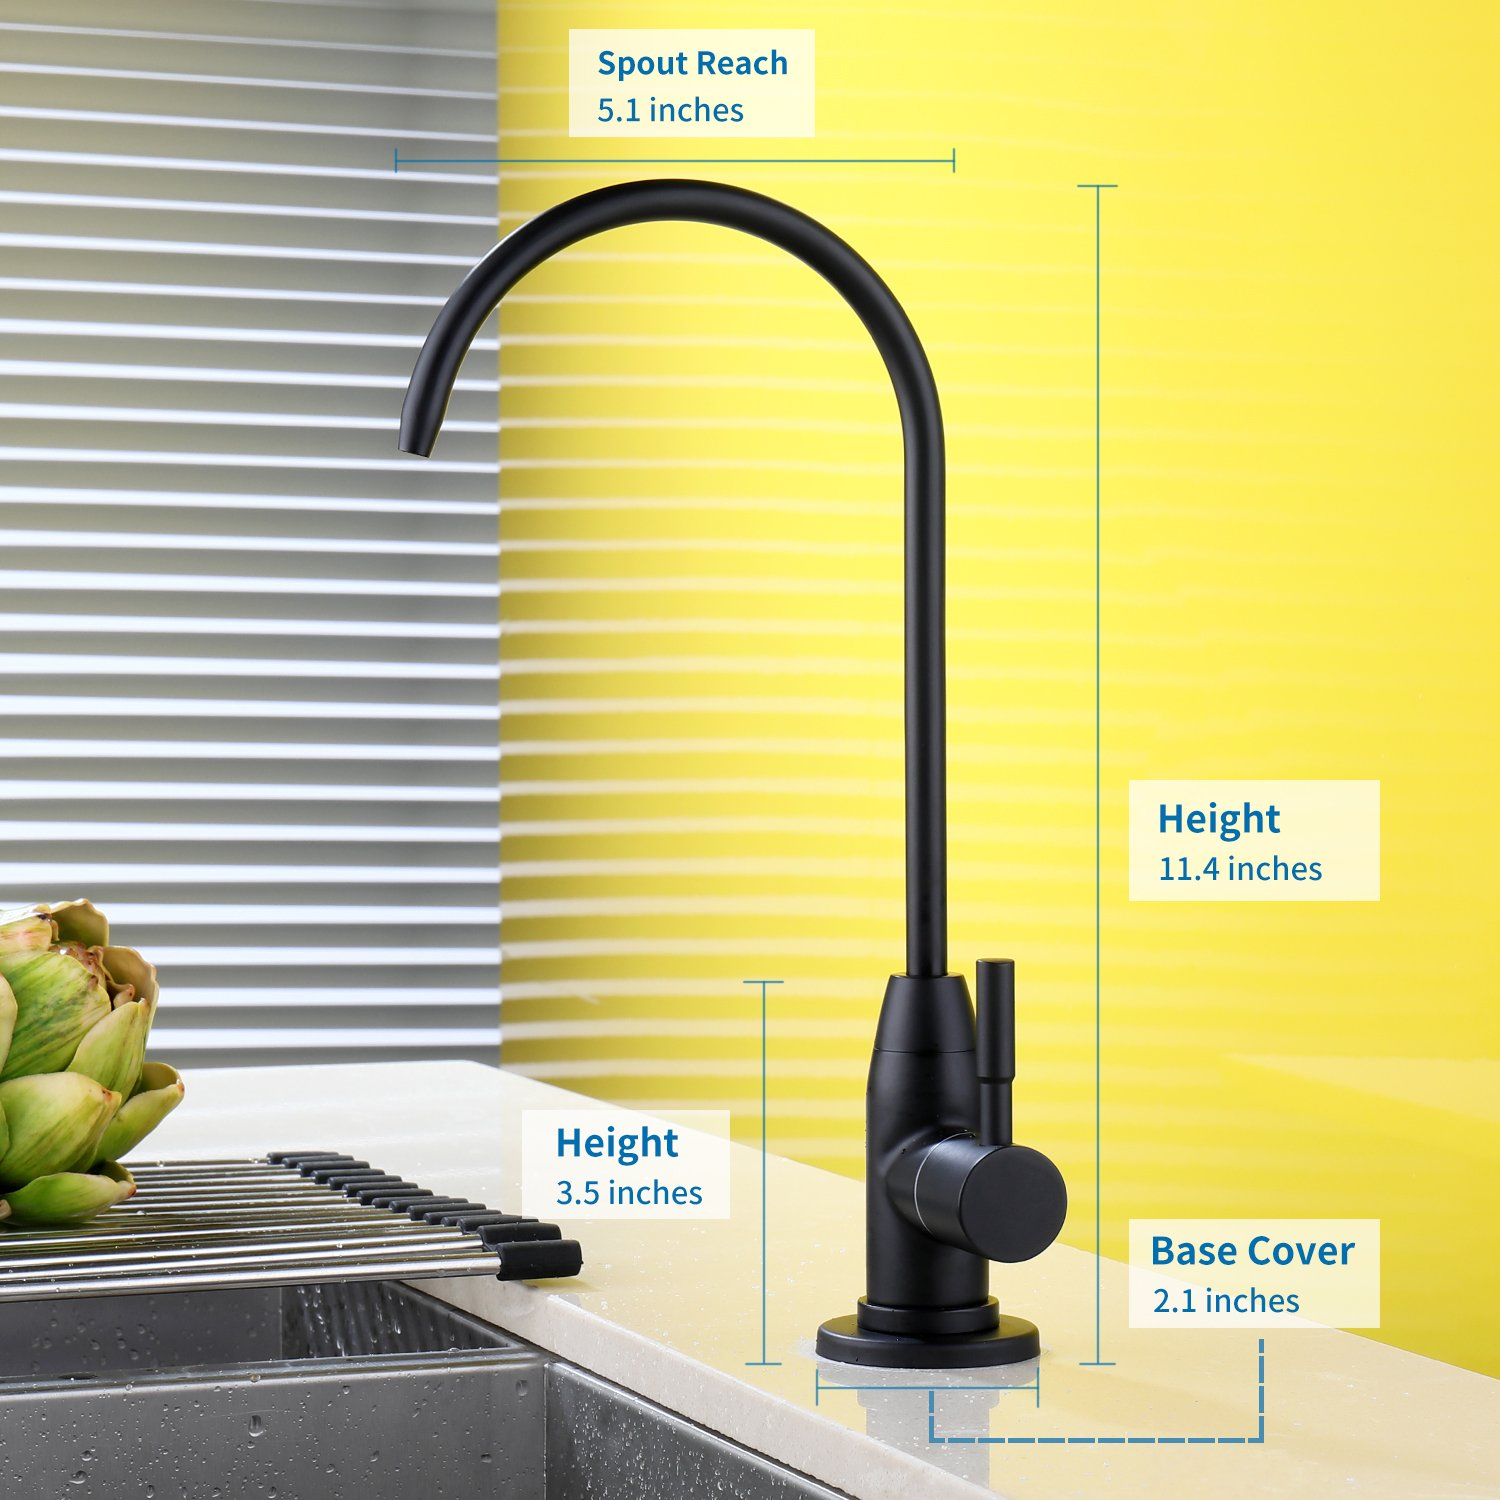 DuranRyan RO Drinking Water SUS304 Stainless Steel Faucet for RO Reverse Osmosis & Filter with Matte Black Finish by DuranRyan (Image #3)